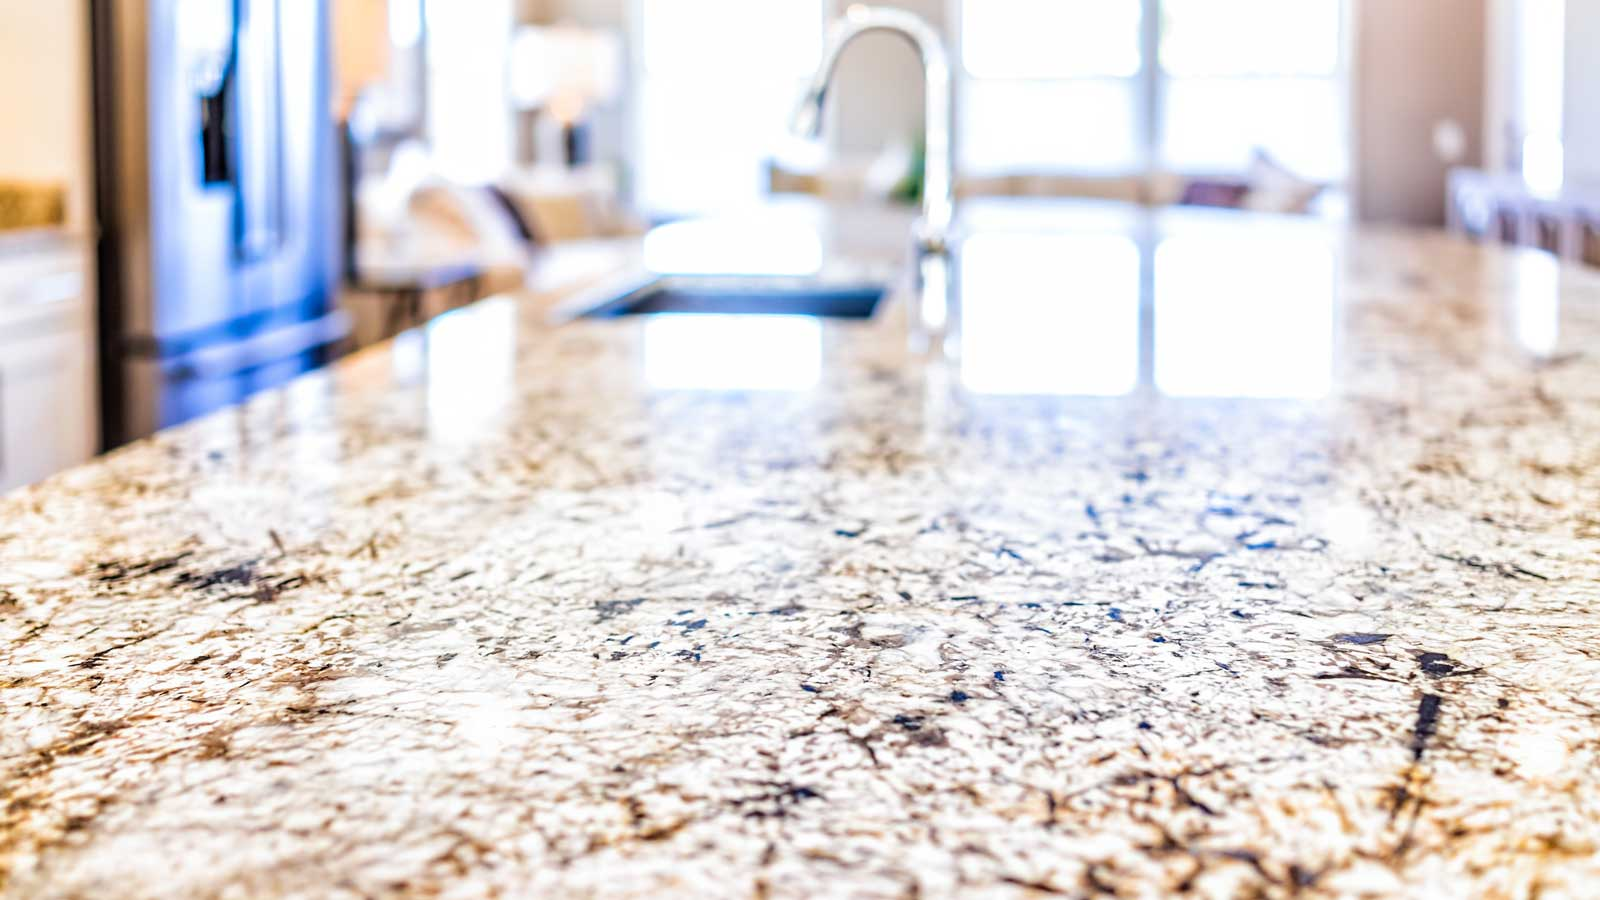 Caring for granite countertops is easy – but you need to know a few tips.